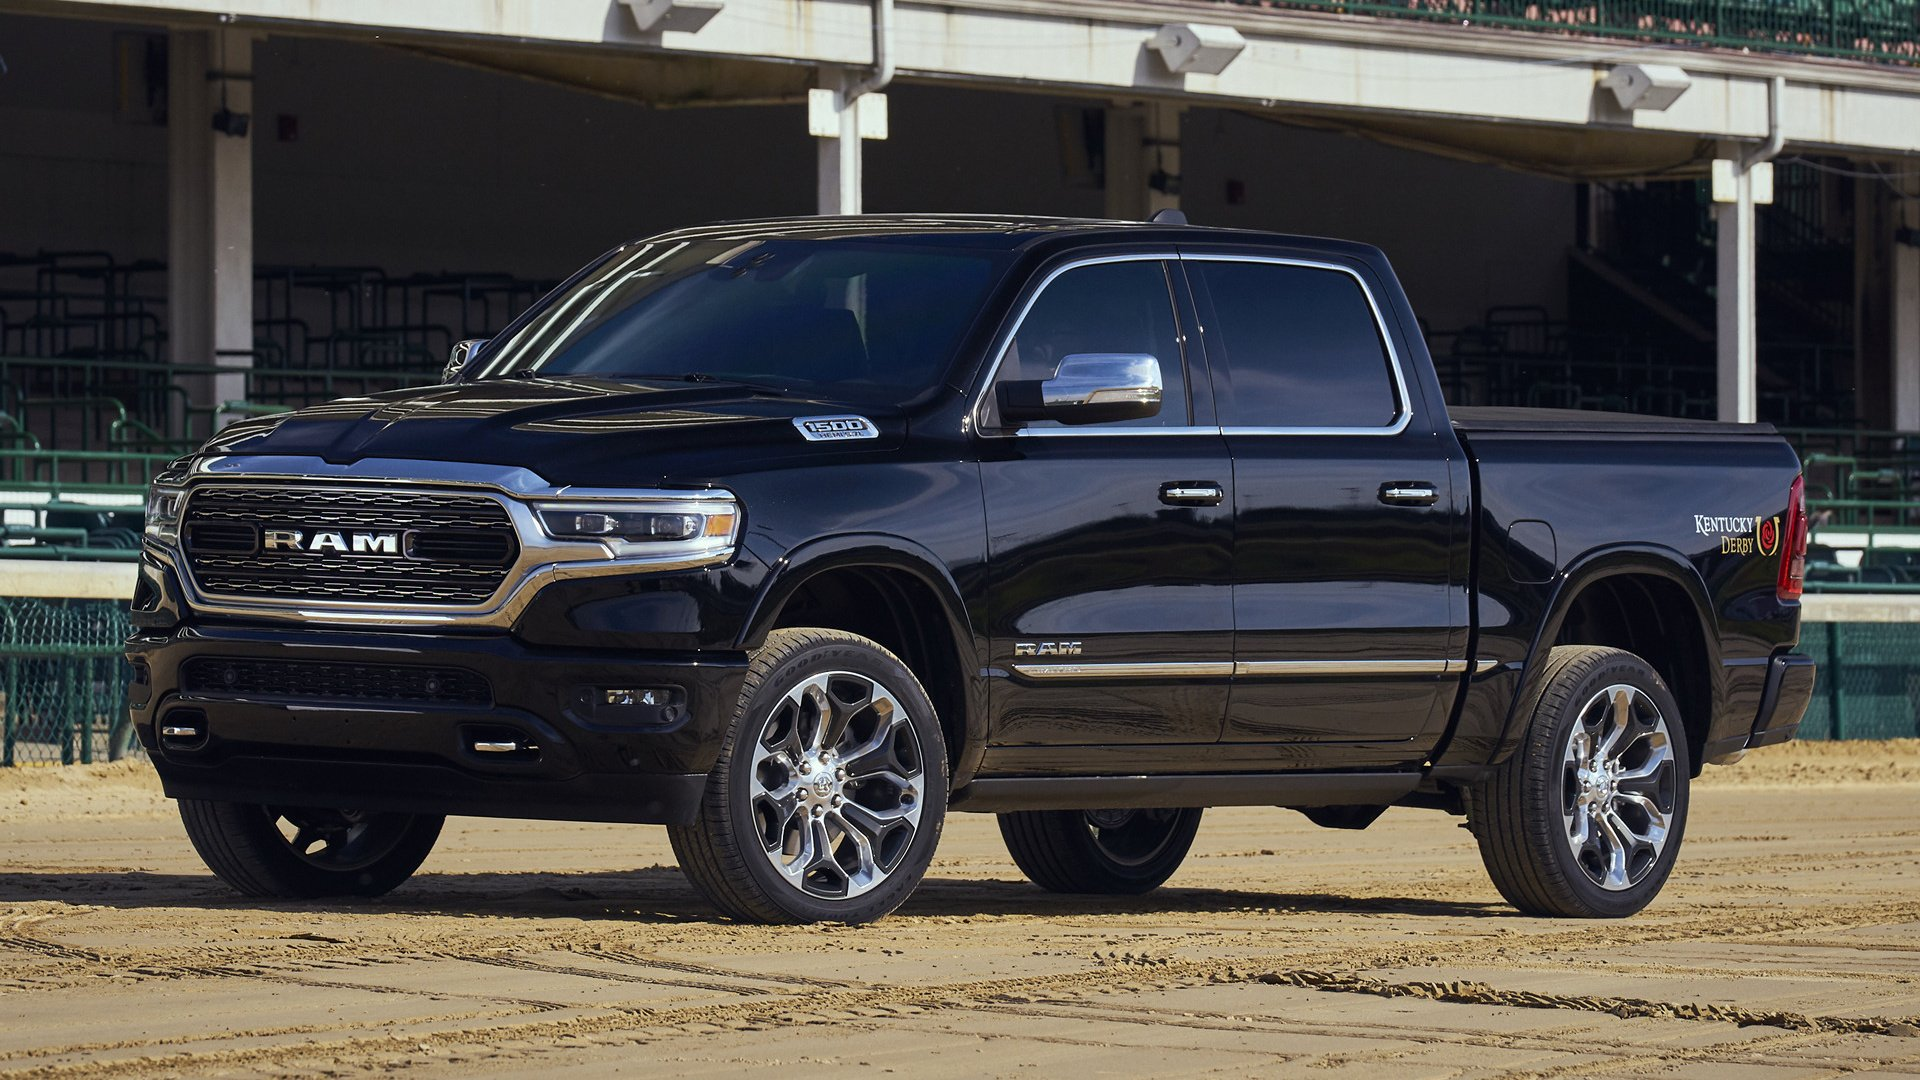 2019 Ram 1500 Limited Crew Cab Kentucky Derby Edition Hd Wallpaper